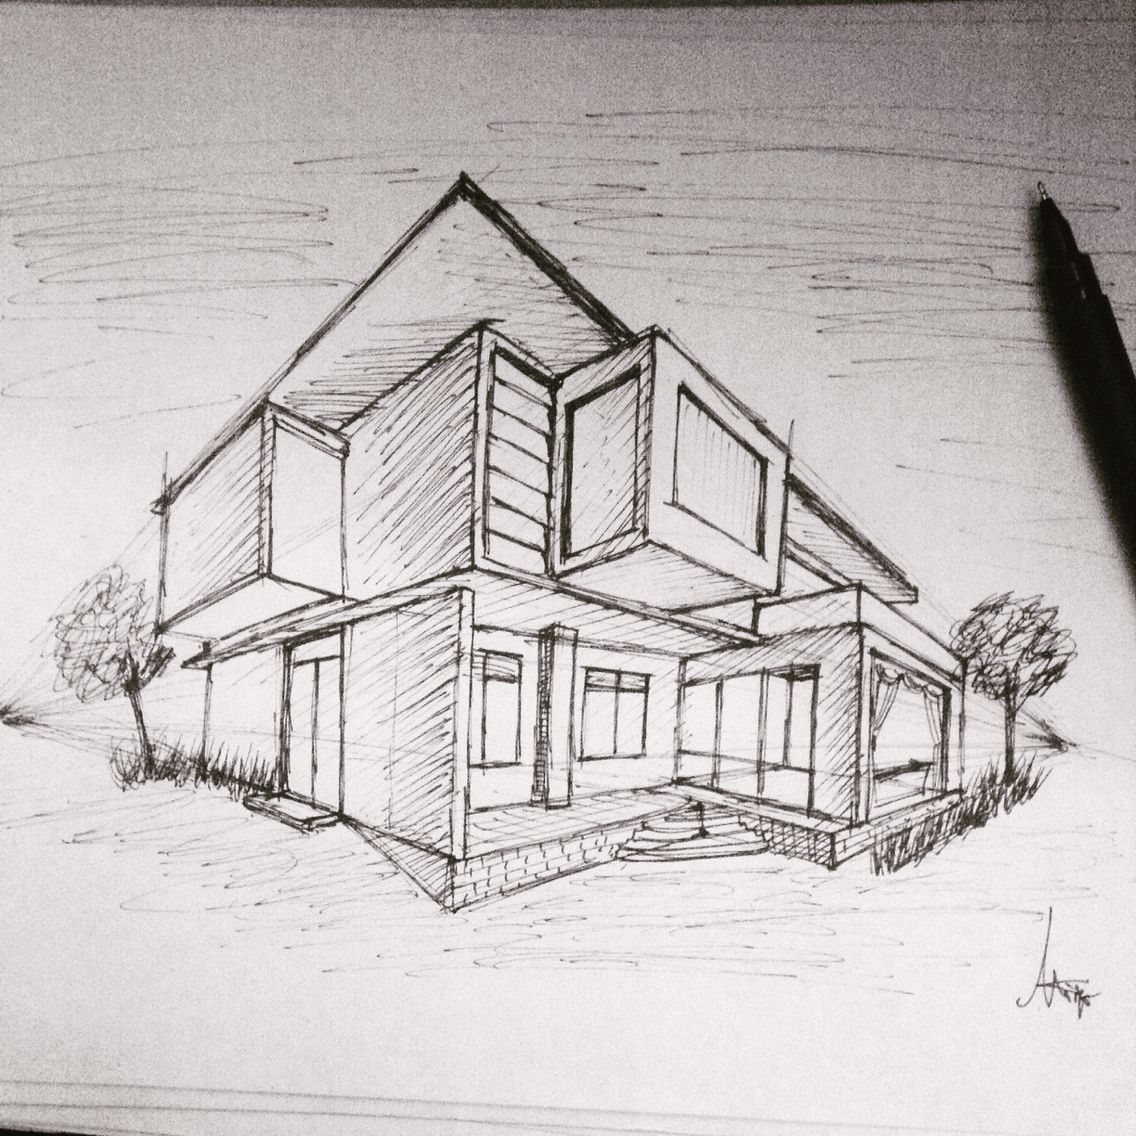 Try My Best For Sketching In